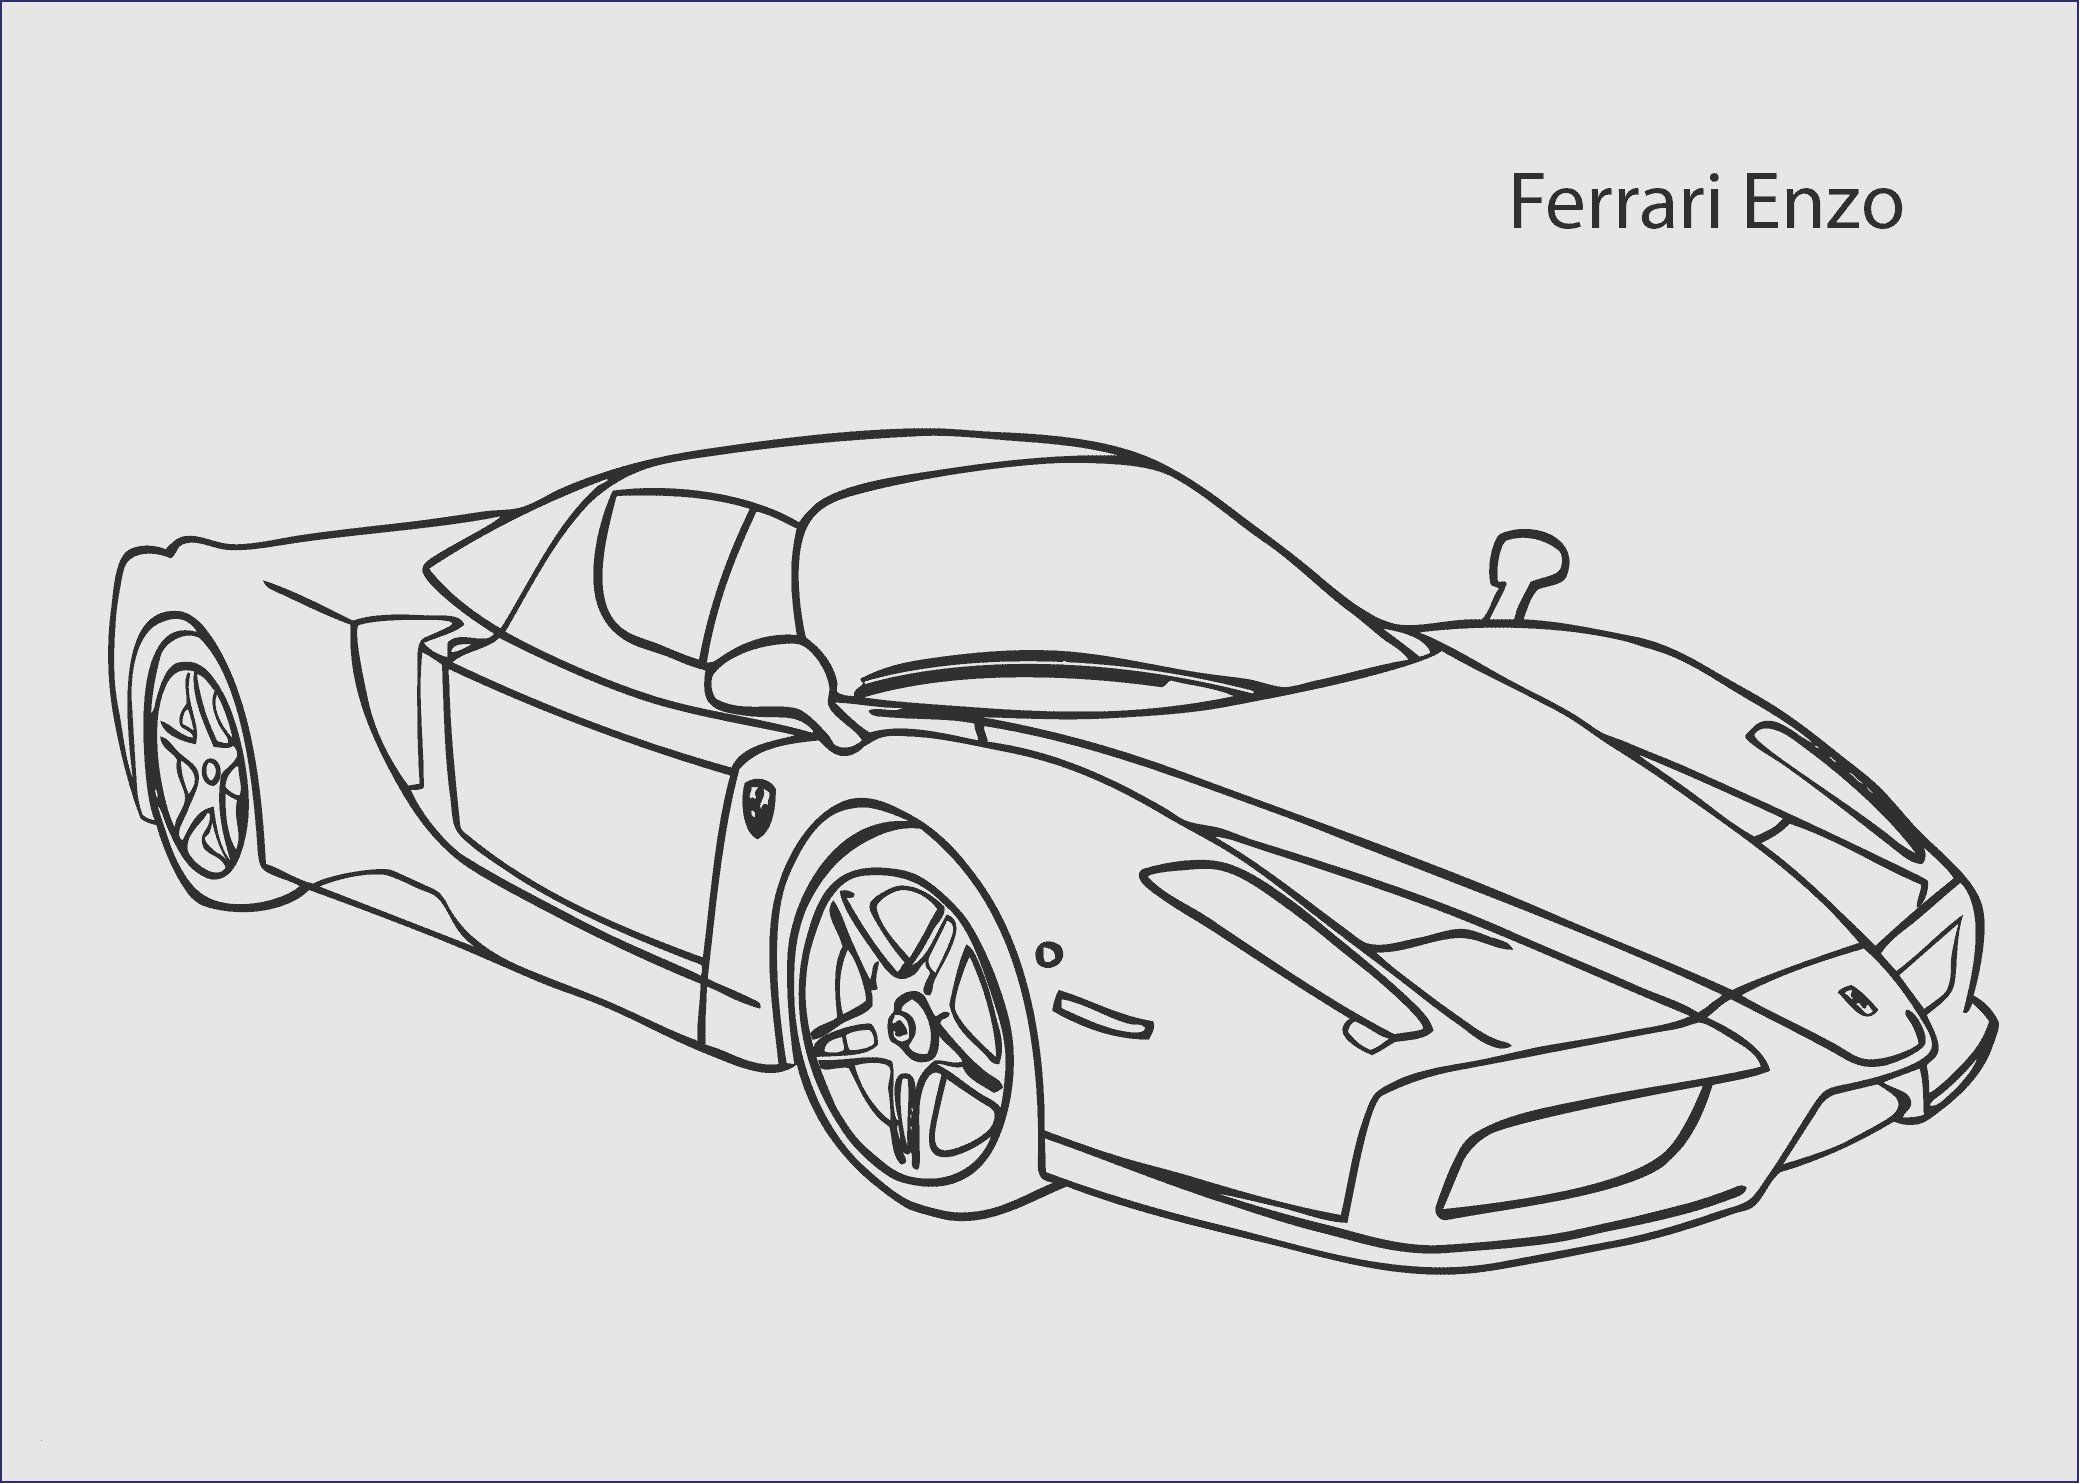 Police Car Coloring Pages Lovely Lamborghini Coloring Page In 2020 Sports Coloring Pages Cars Coloring Pages Race Car Coloring Pages